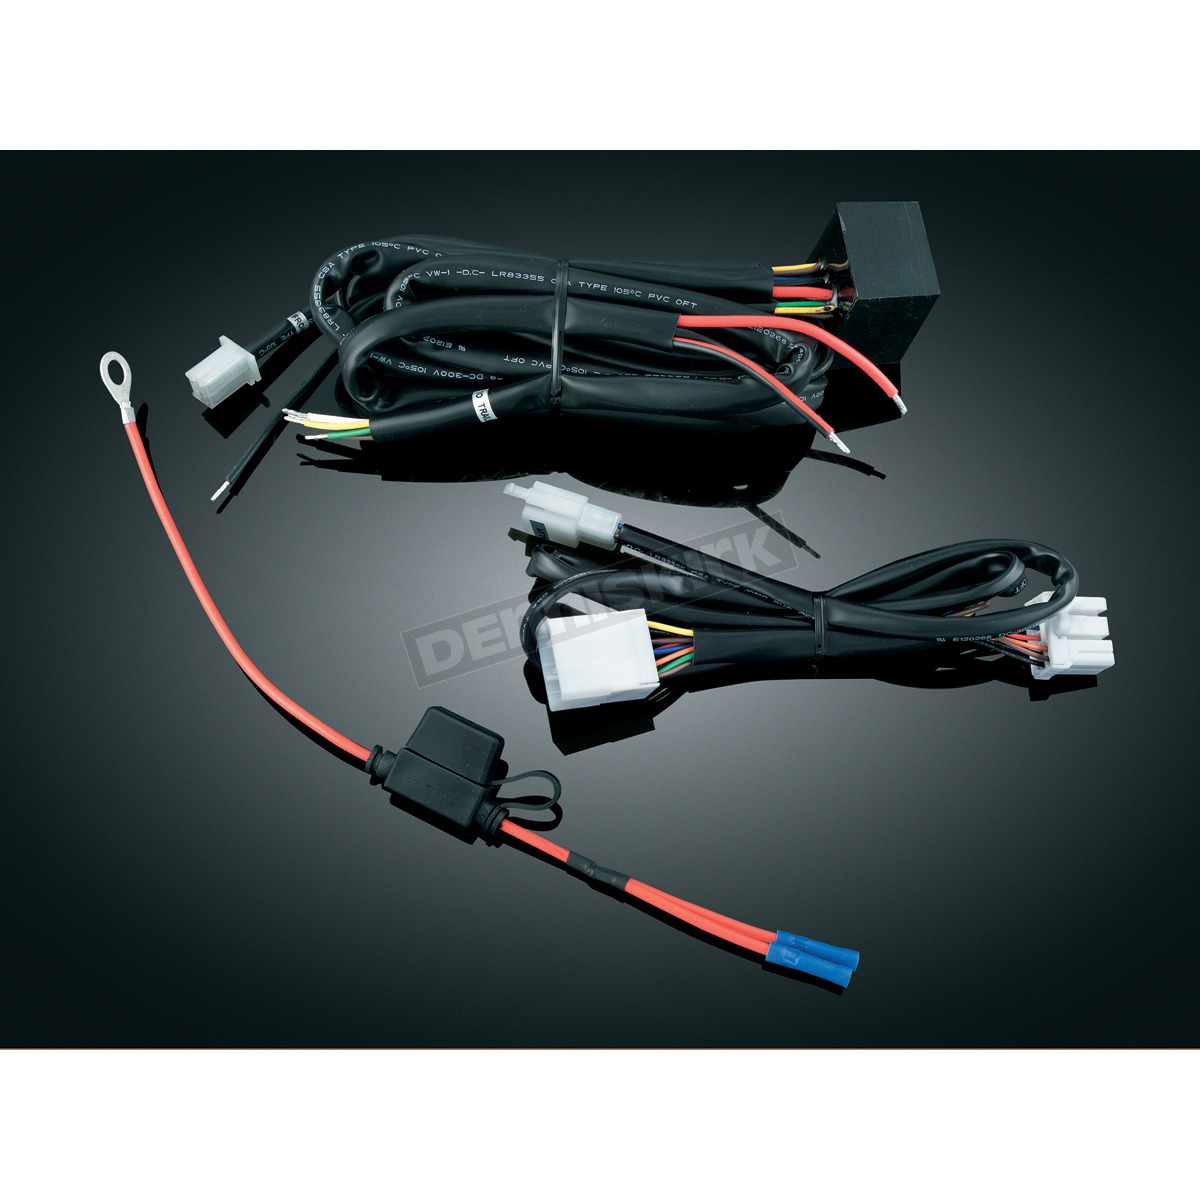 oe215973 kuryakyn plug and play trailer wiring and relay harness 7672 plug and play trailer wiring harness at sewacar.co